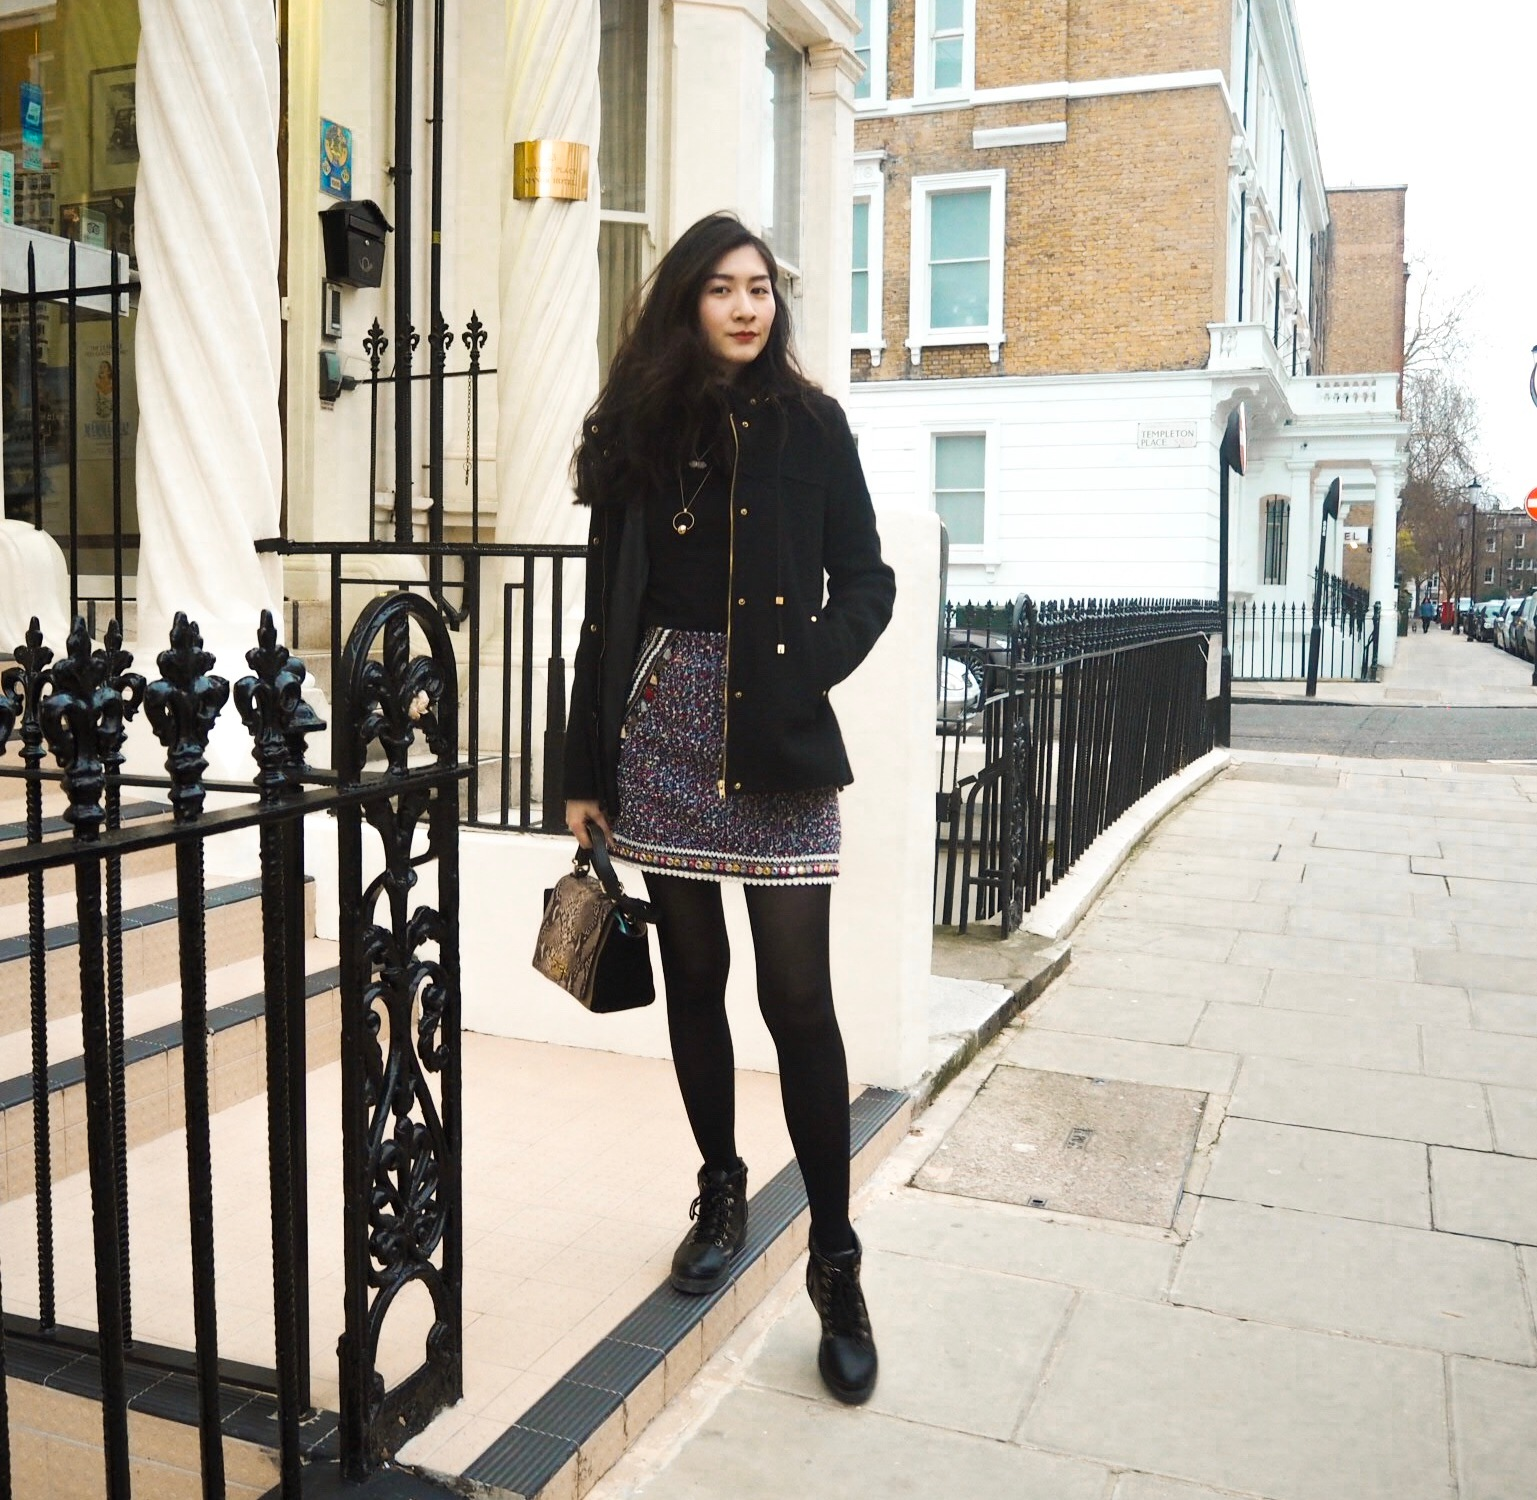 the-nat-channel-ootd-styled-by-n-black-winter-outfit-london.JPG